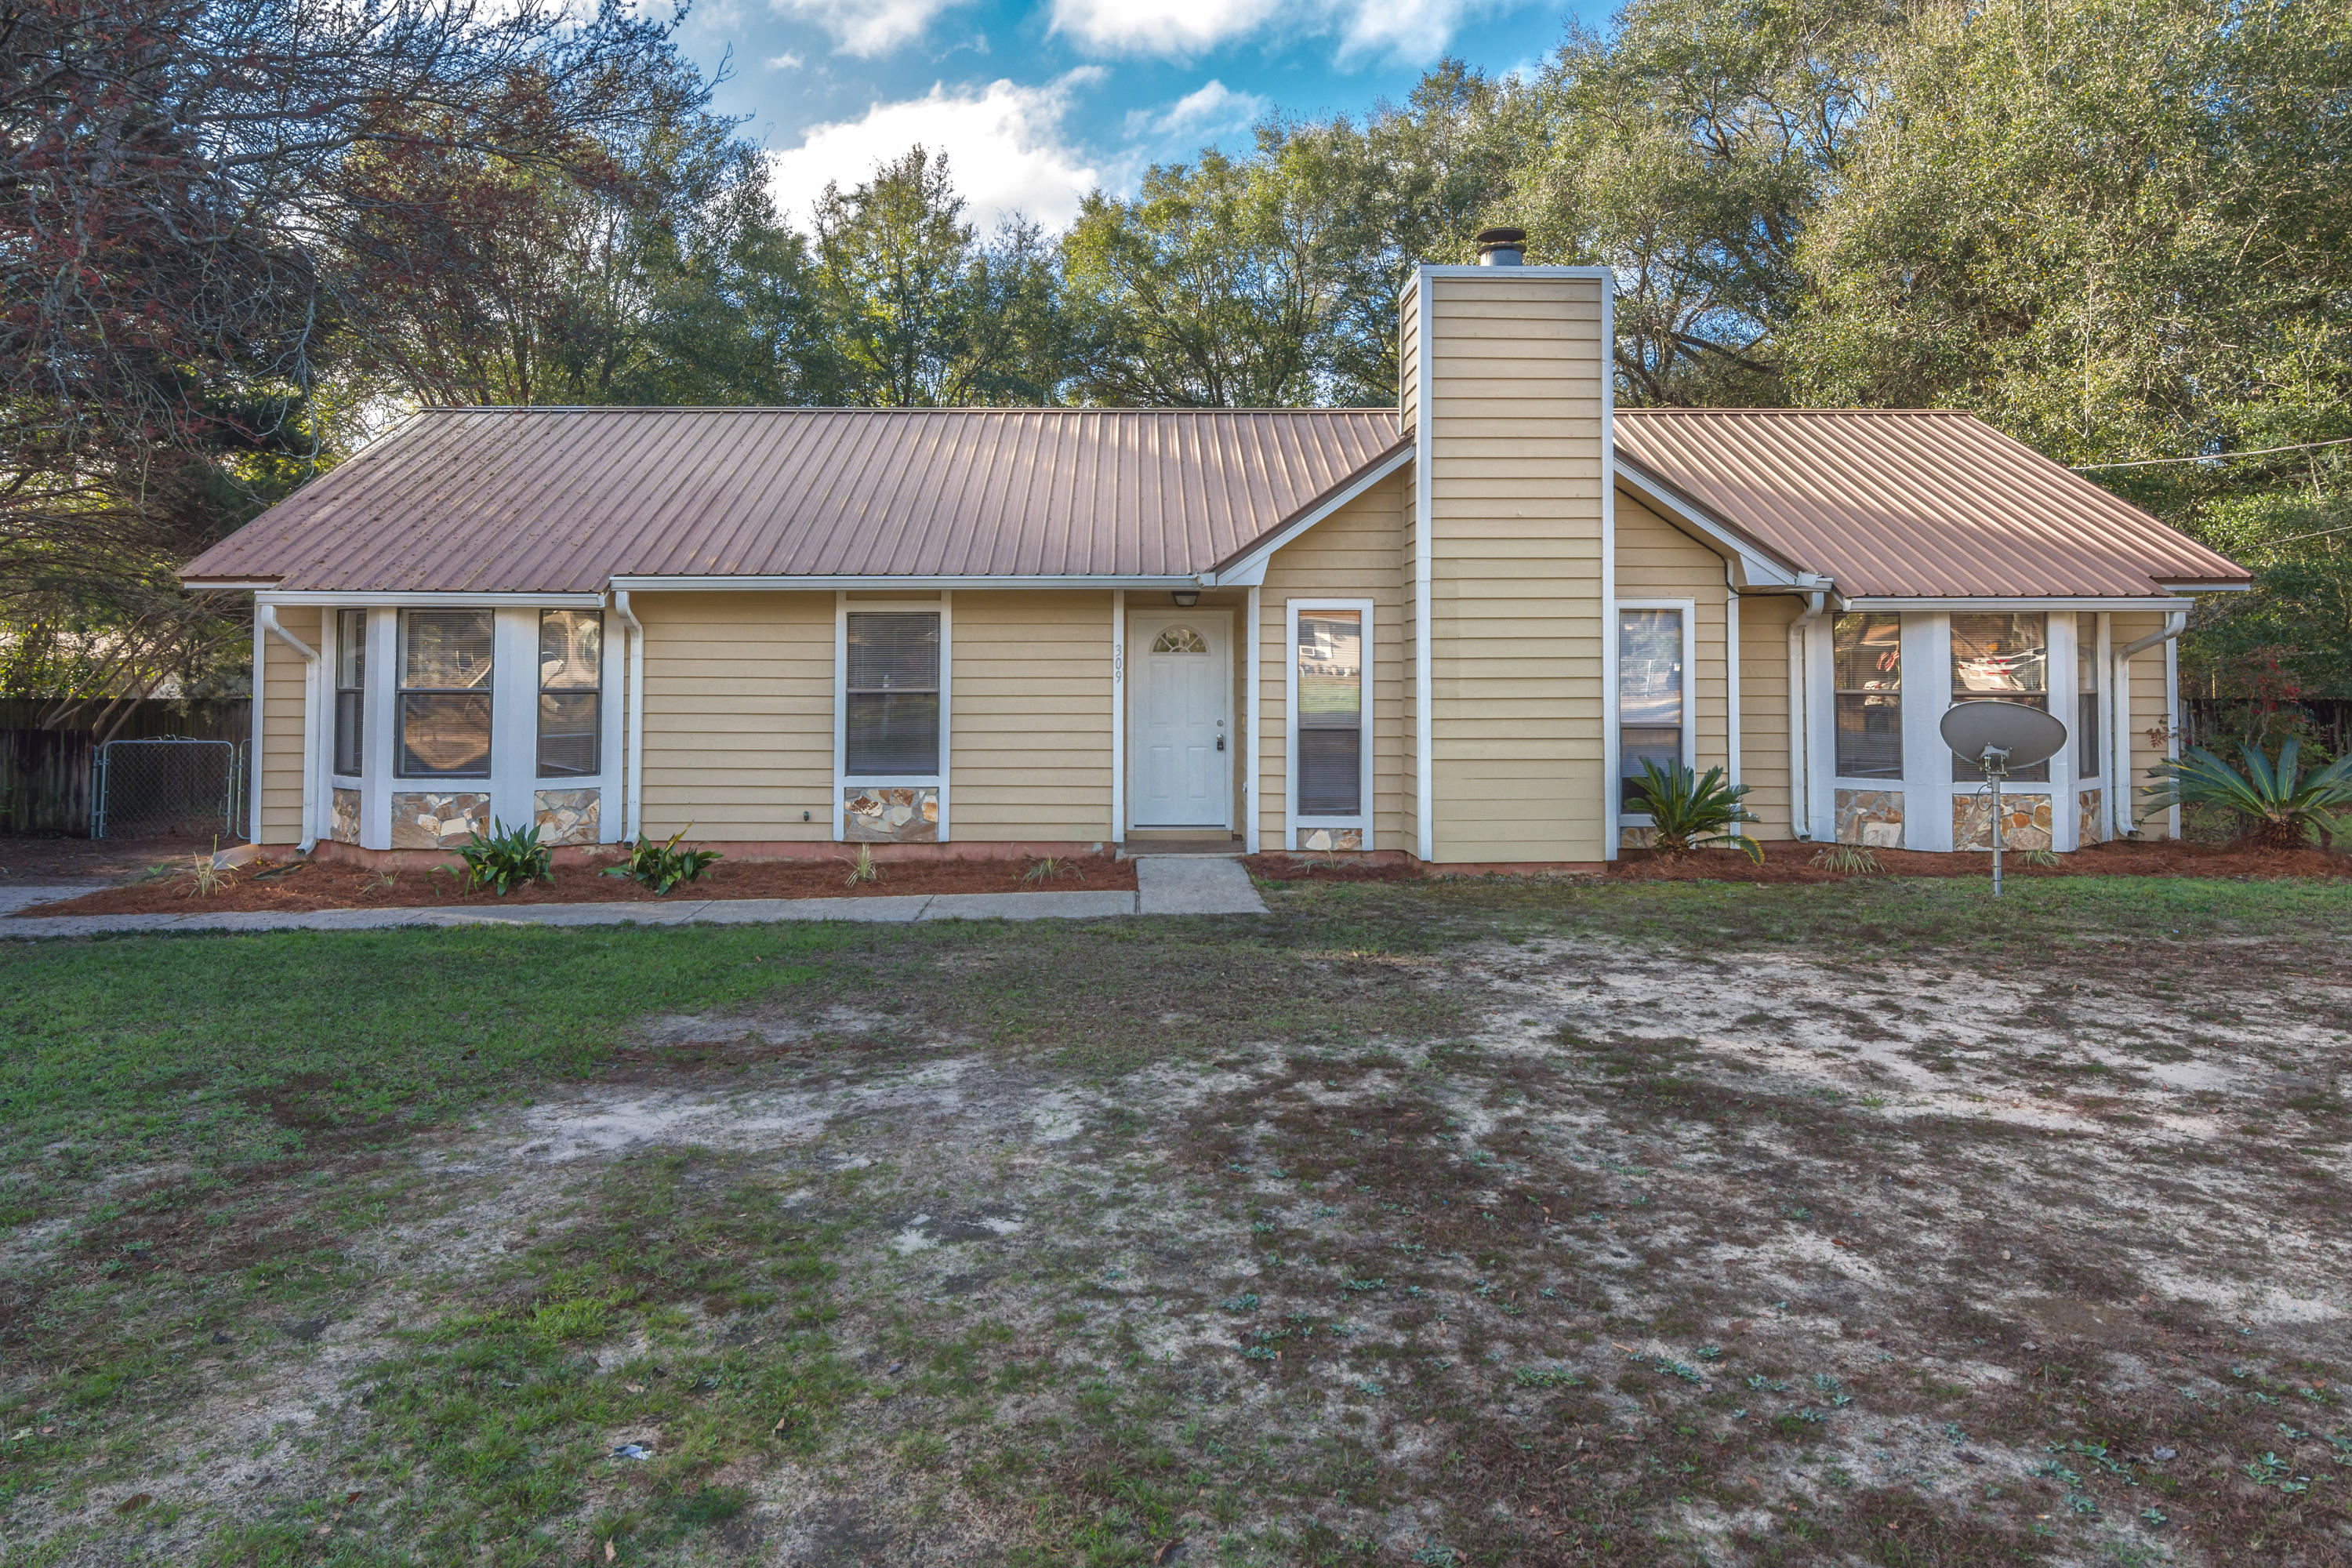 4 Bedroom 2 bath move in ready home located in the middle of Crestview with easy commute to the loca